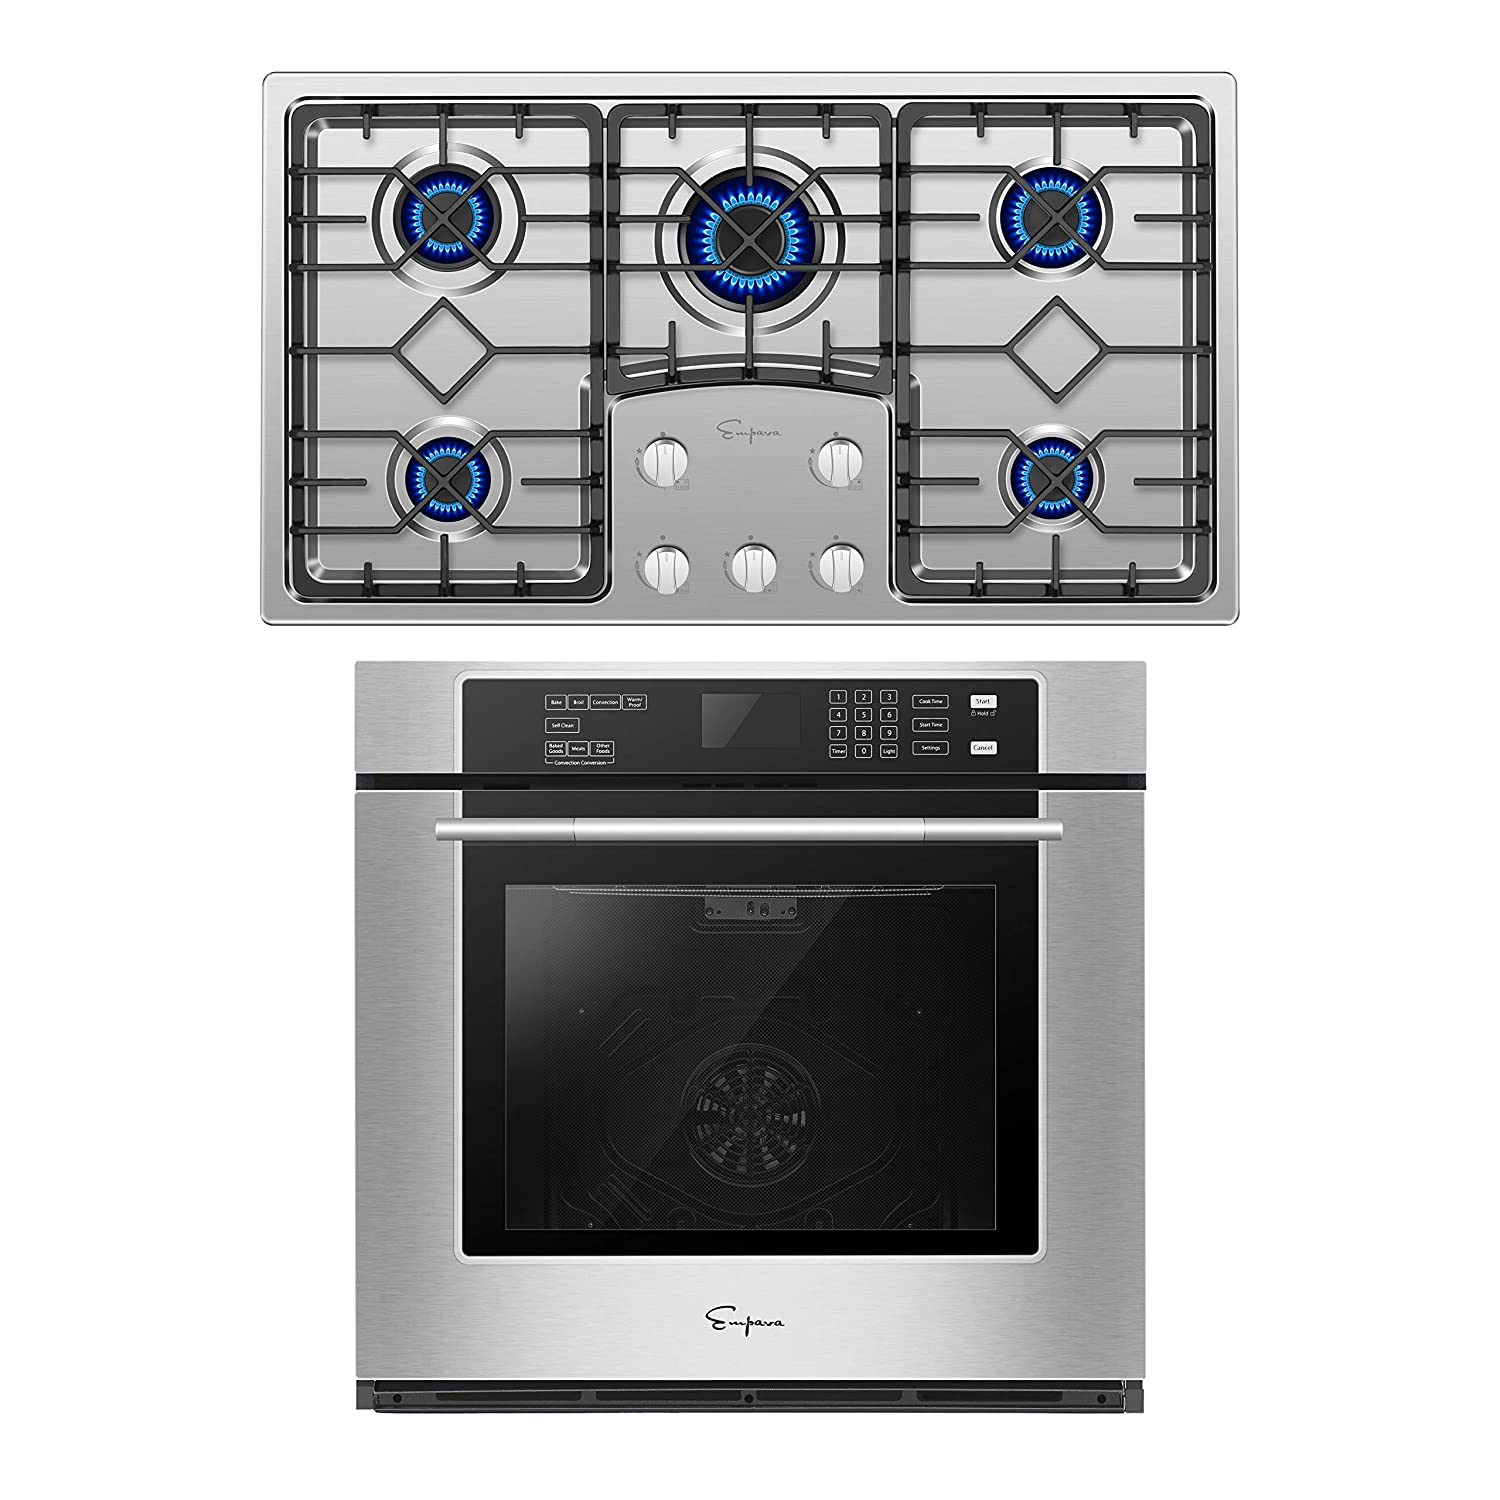 Empava 30 Inch Electric Single Wall Oven with Self-cleaning Convection Fan and 36 Inch Gas Cooktop Stove LPG/NG Convertible with 5 Italy SABAF Burners in Stainless Steel